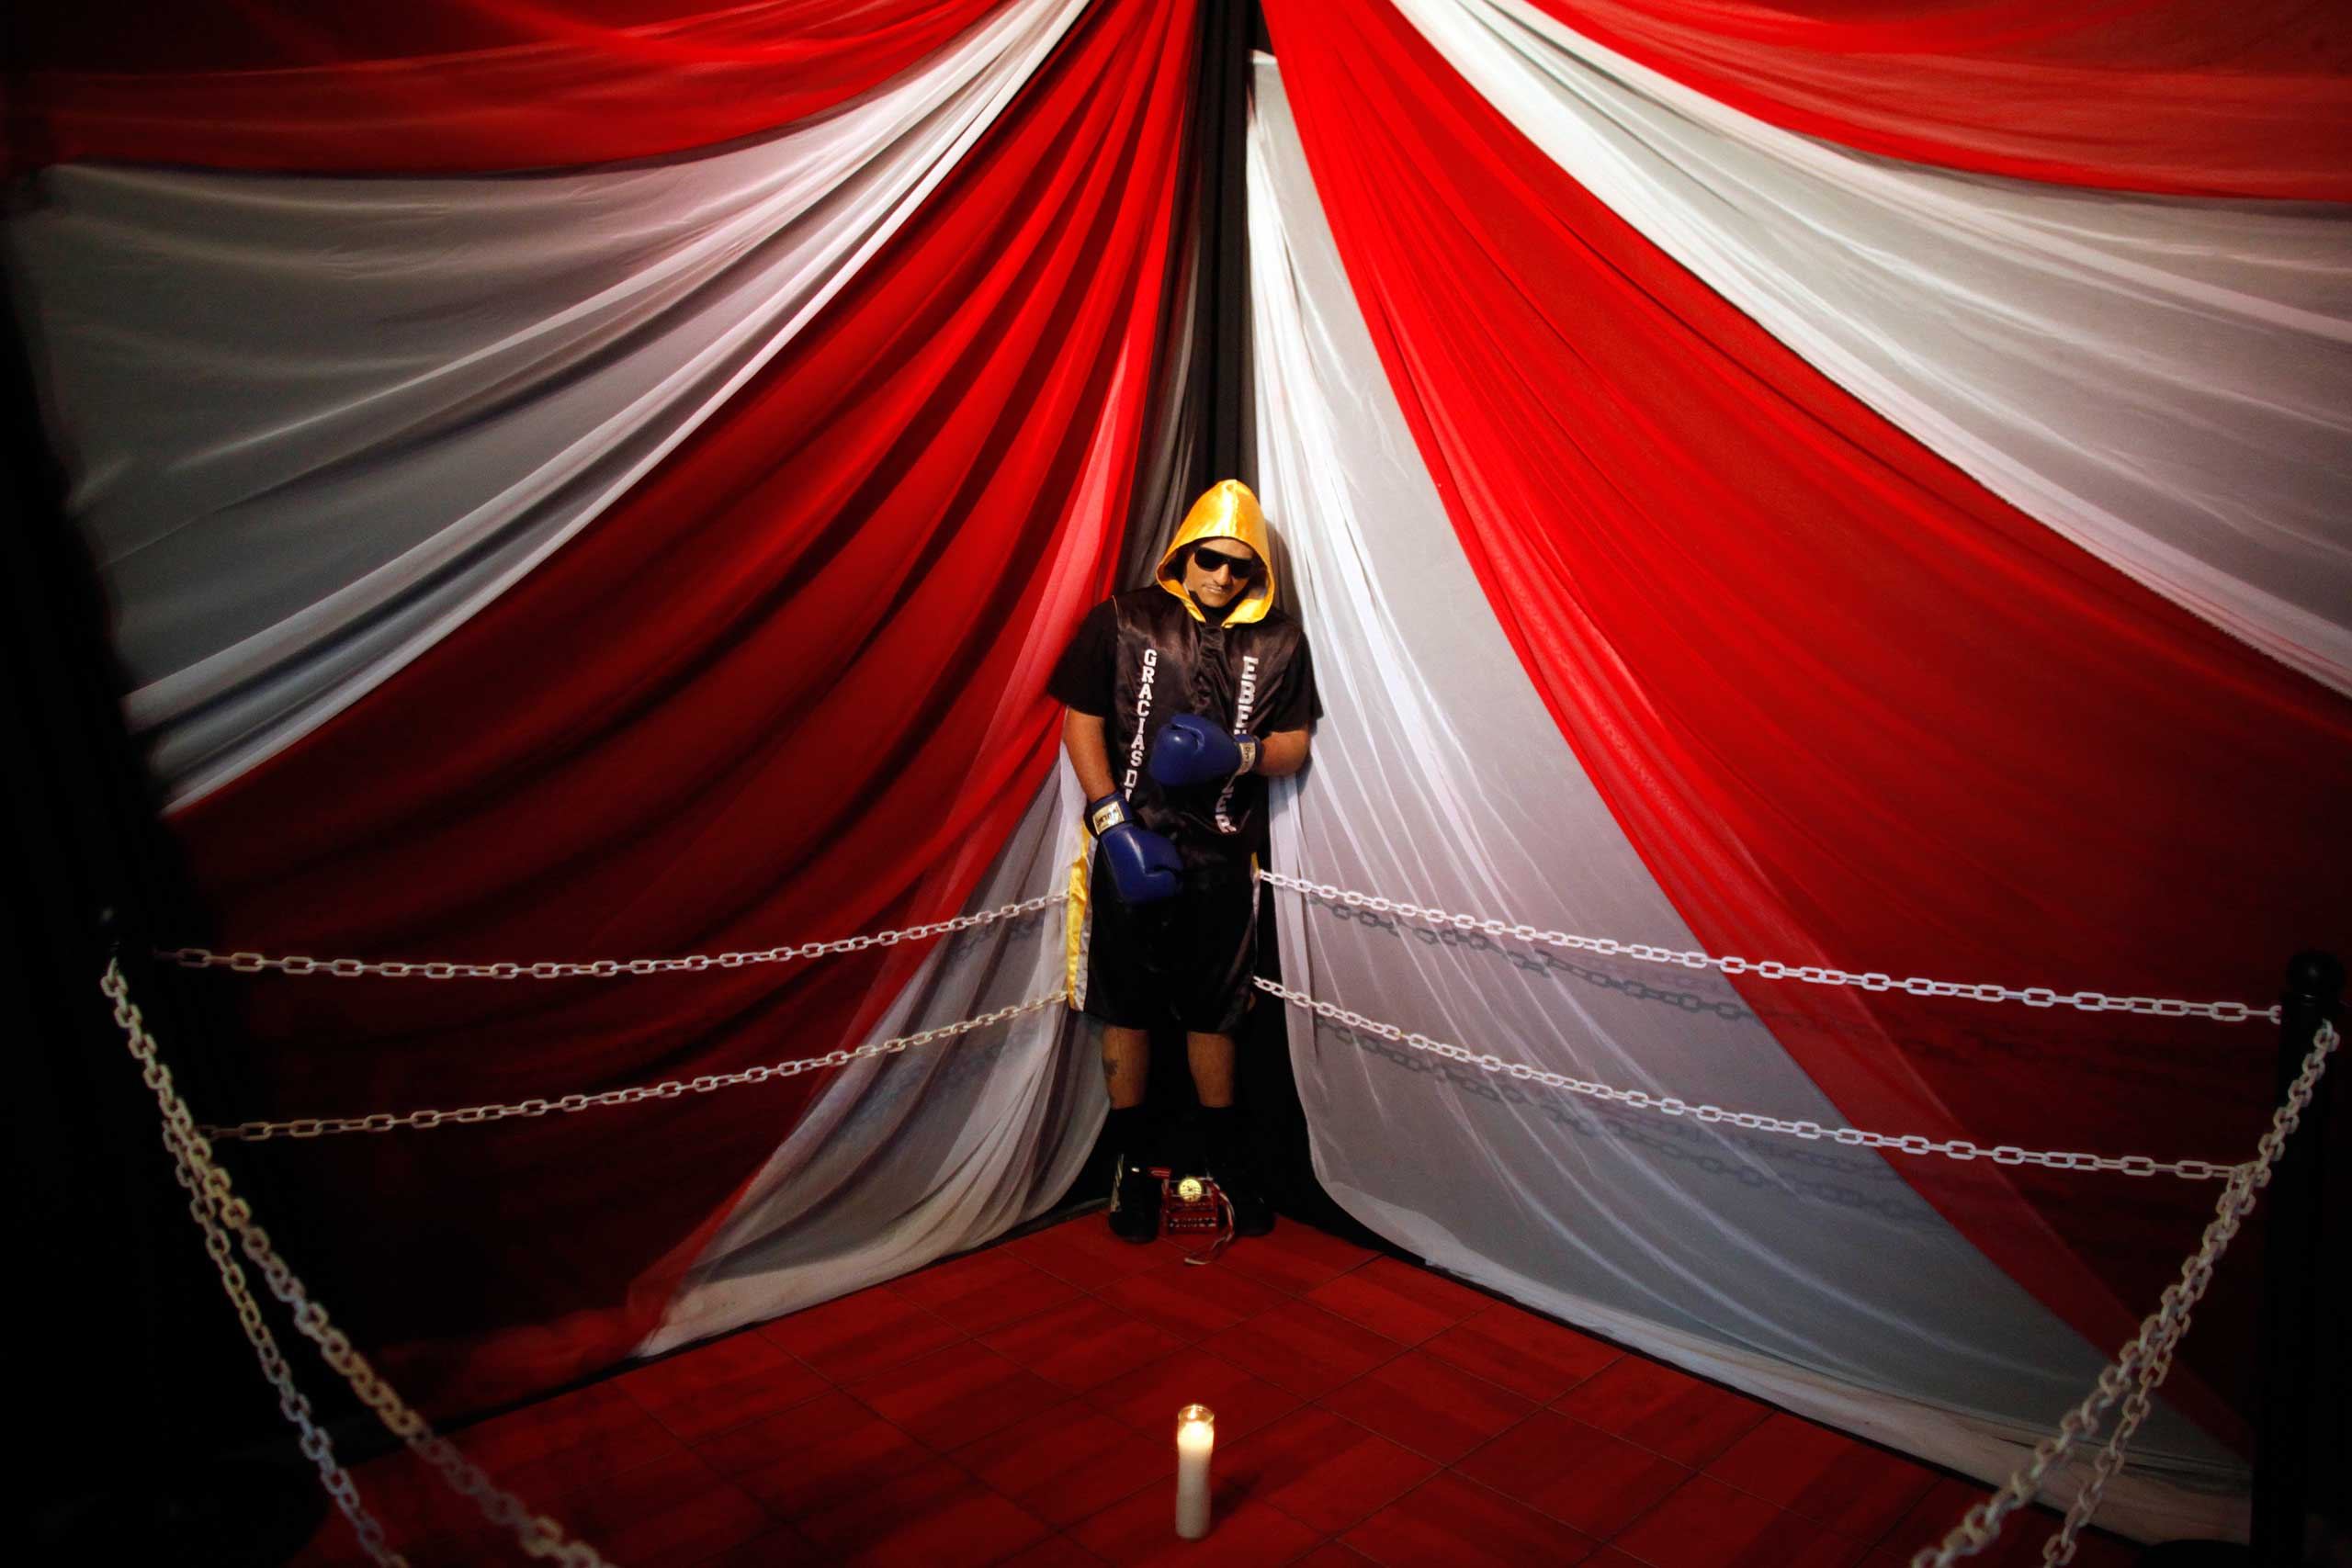 The body of boxer Christopher Rivera, who was shot to death, is propped up in a fake boxing ring during his wake at the community recreation center within the public housing project where he lived in San Juan, Puerto Rico, Jan. 31, 2014.